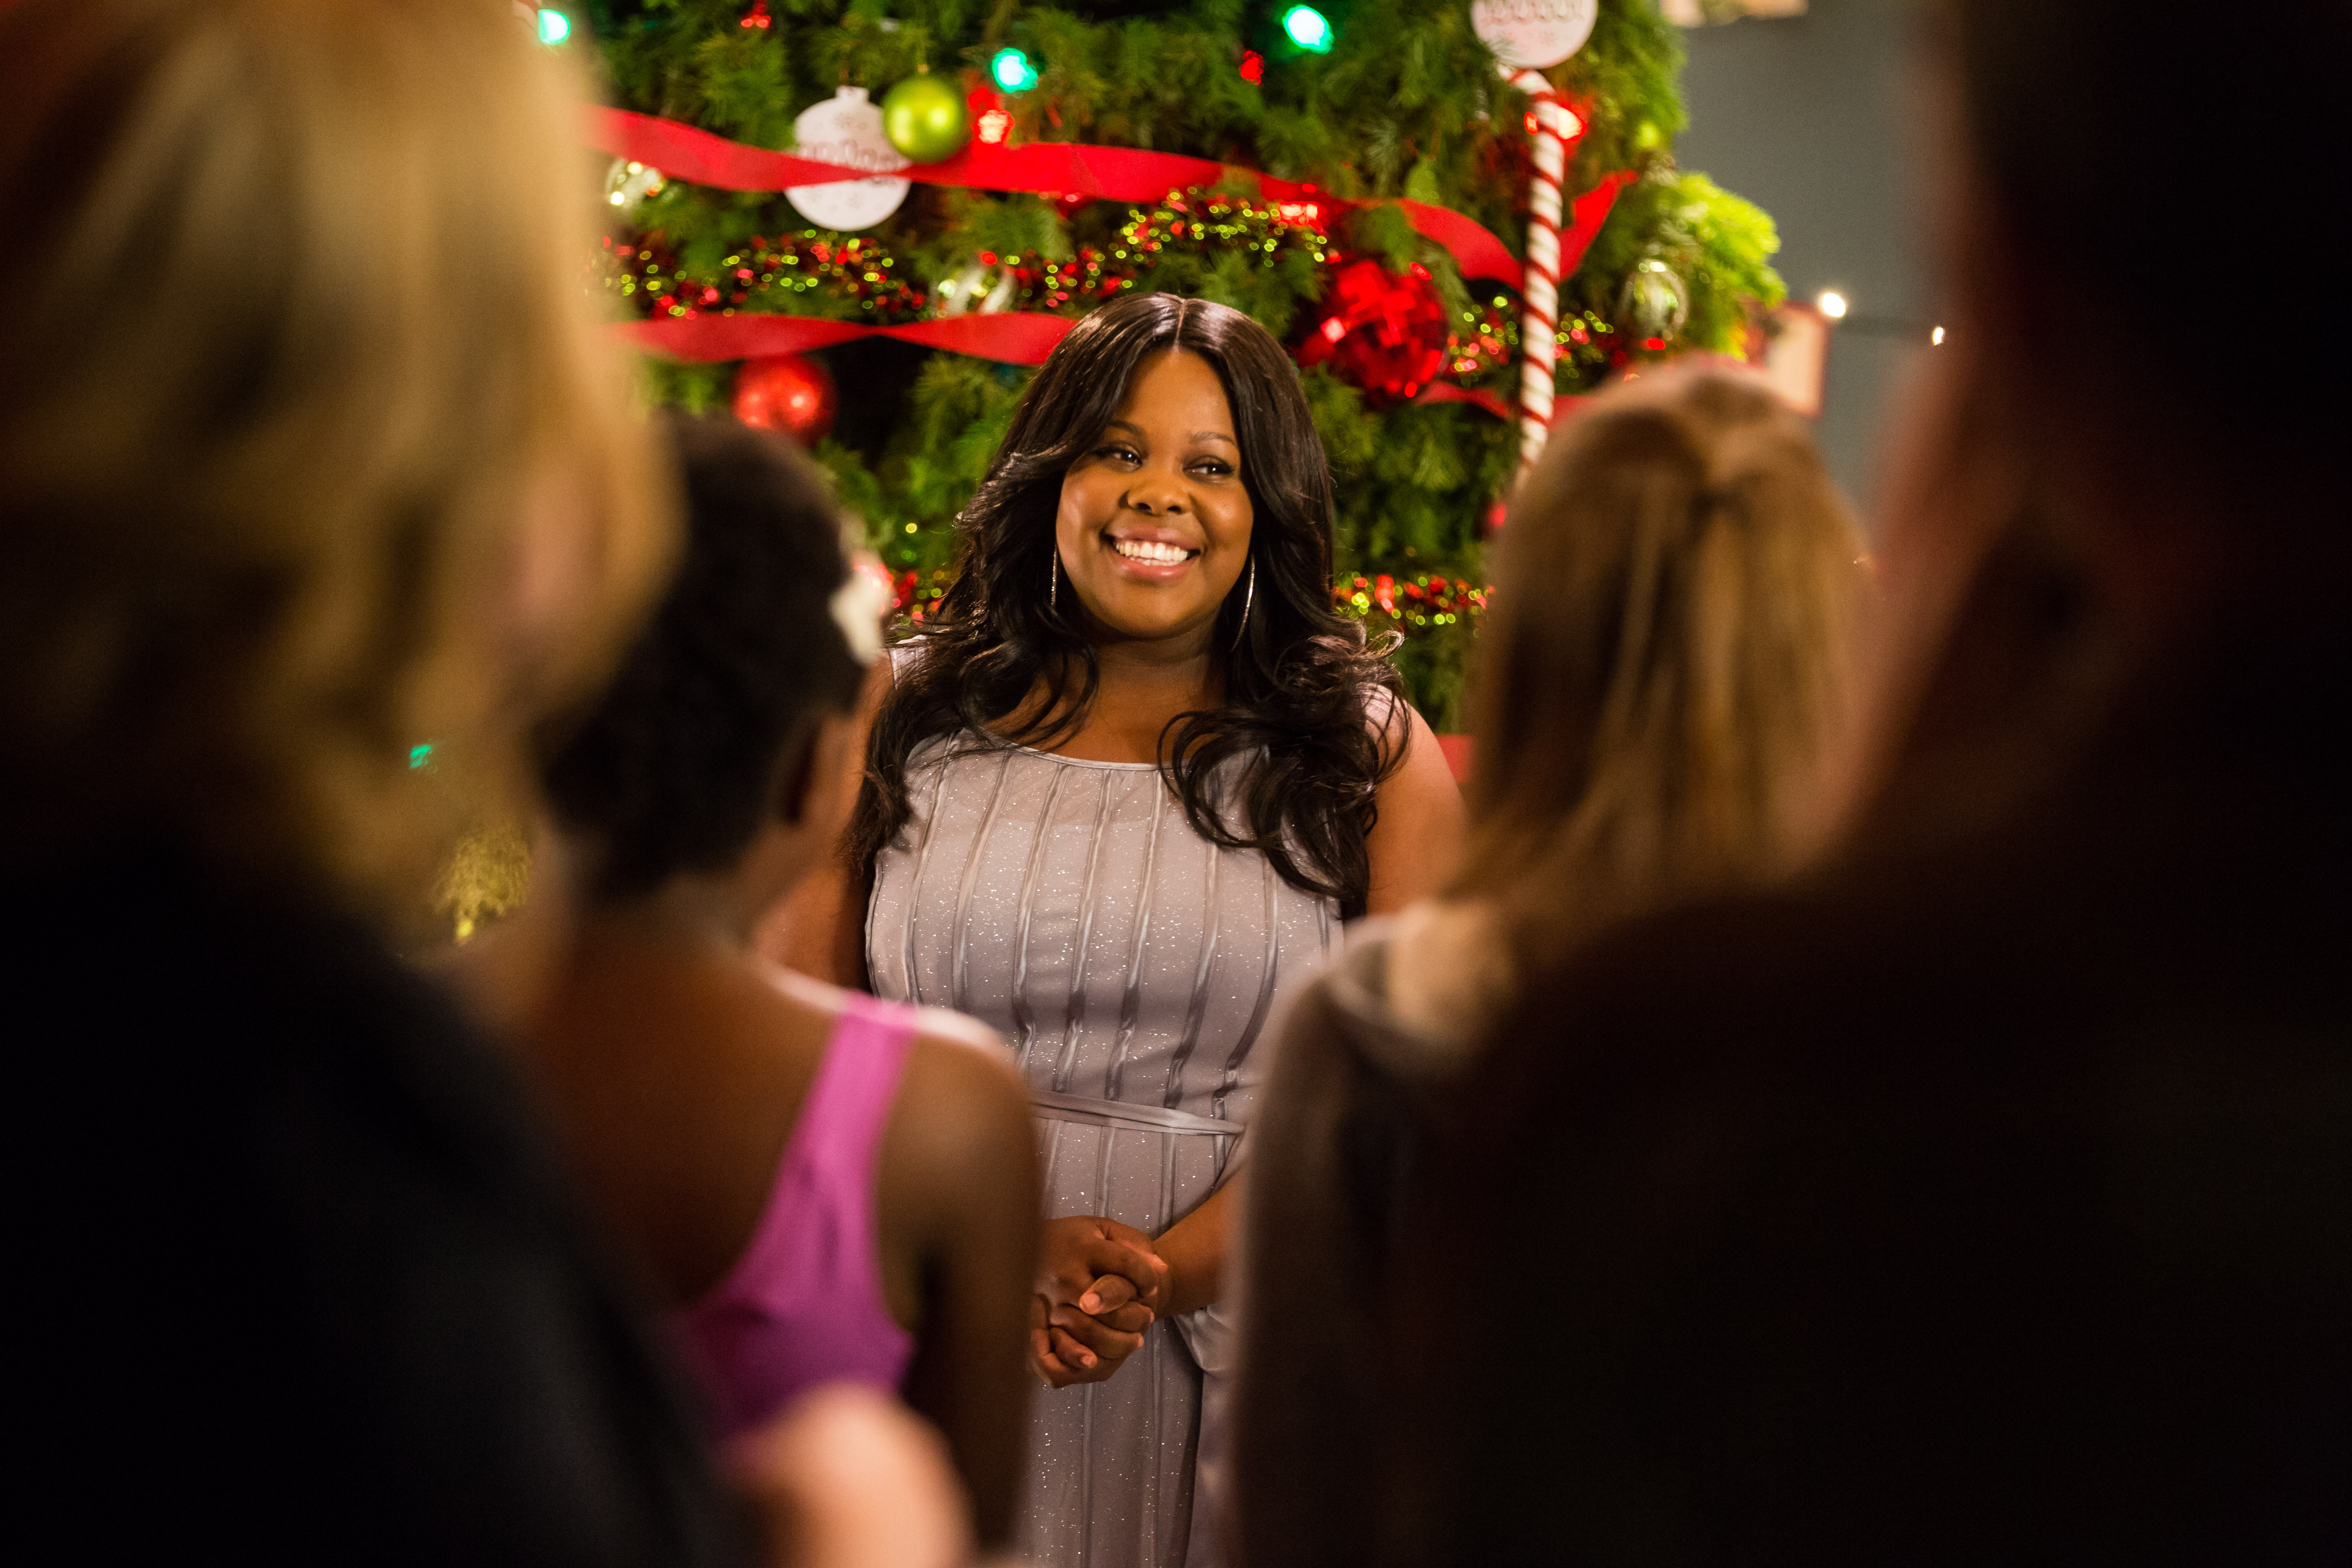 The wiz live 39 s amber riley stars in new up movie 39 my one for Christmas movies that are on tonight